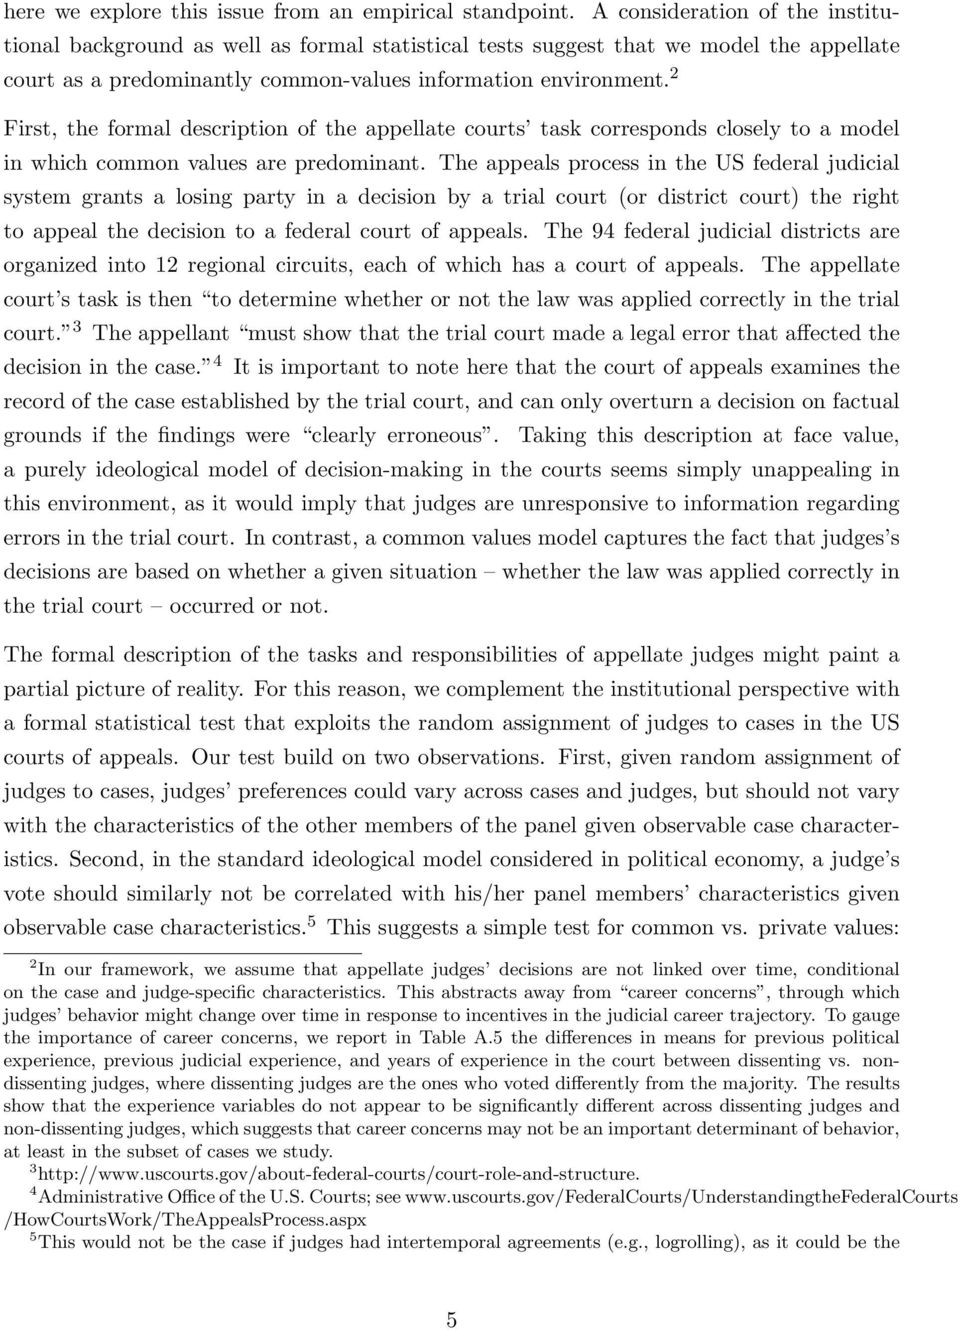 2 First, the formal description of the appellate courts task corresponds closely to a model in which common values are predominant.